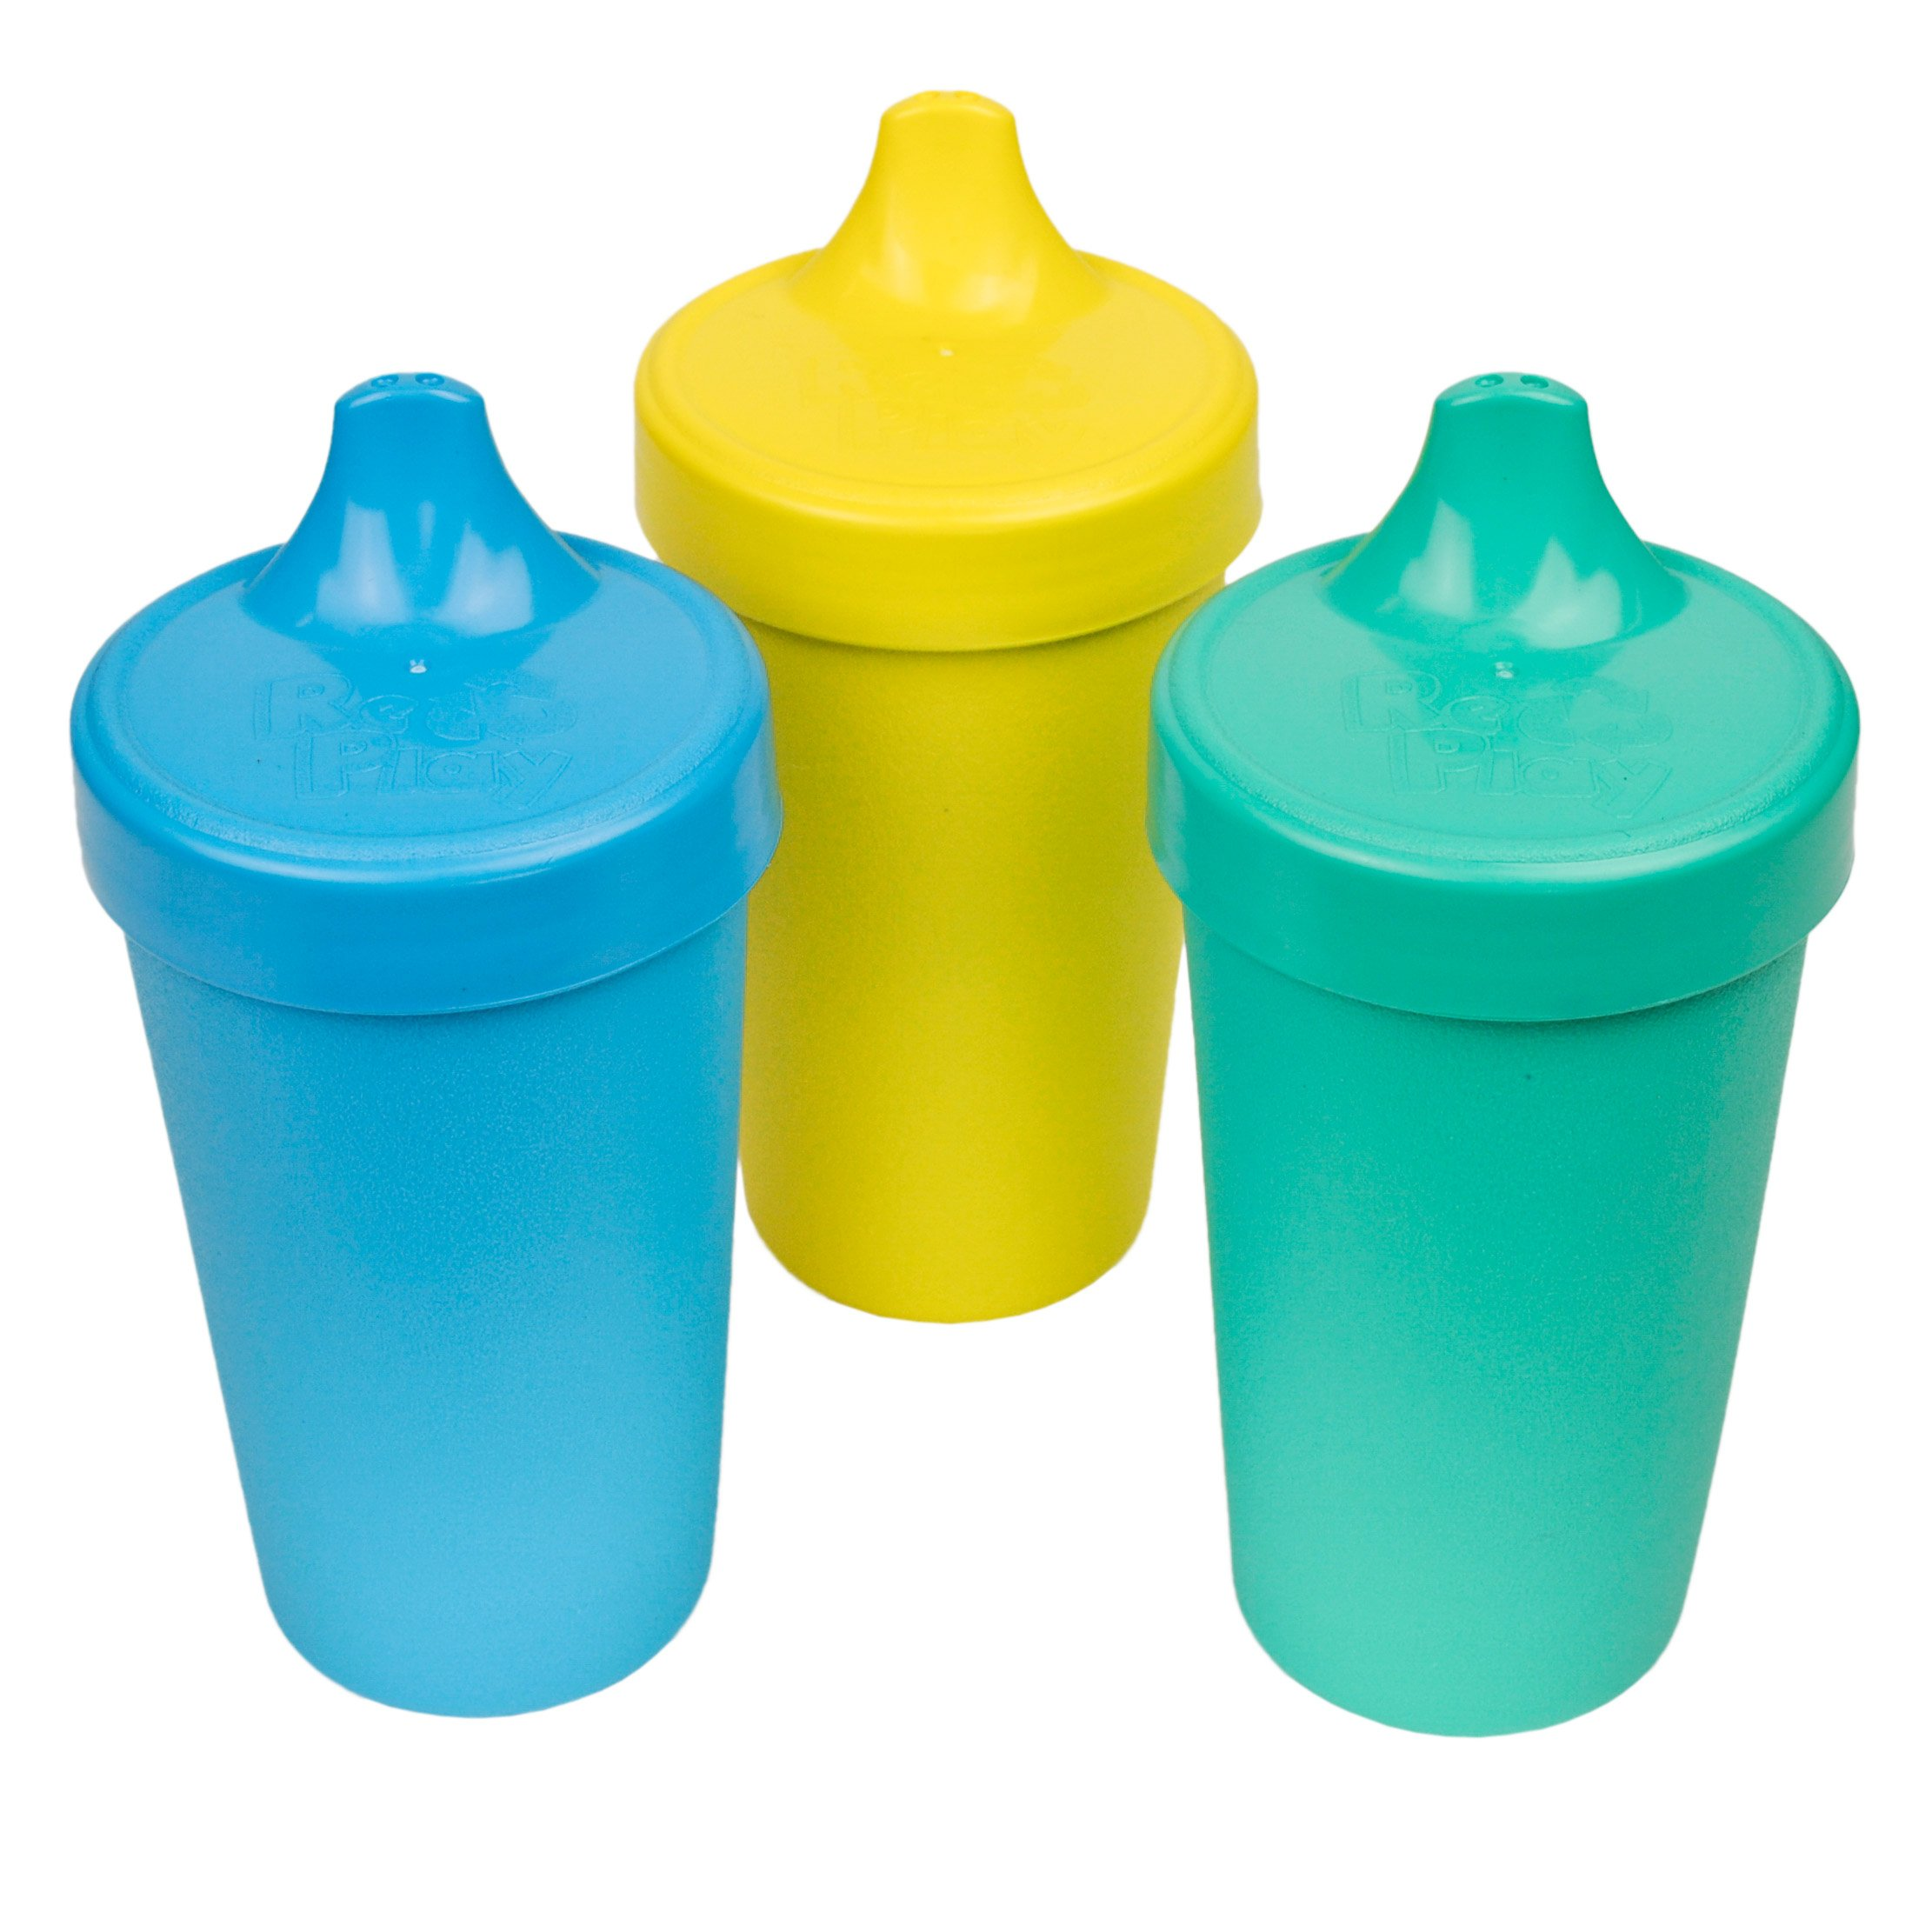 Re-play Snack Stack Cup 2pk With 1 Lid Food Container Bpa Free Recycled Plastics Bowls & Plates Baby